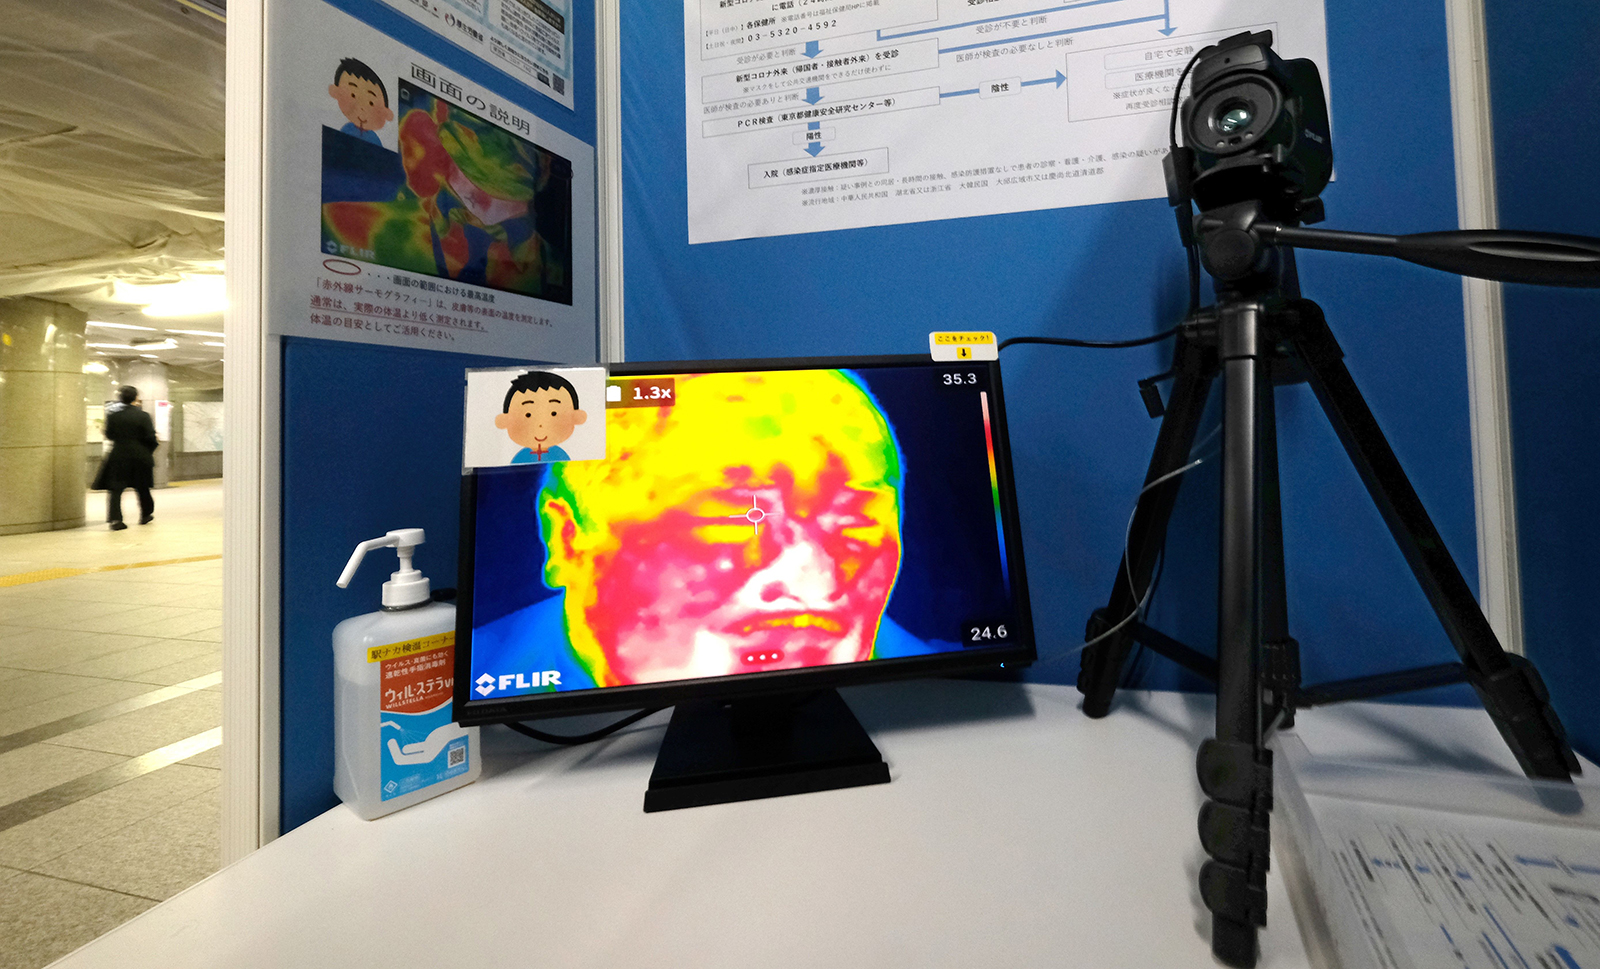 An infrared thermography device used to check body temperature at the Tocho-mae station in Tokyo on March 5.